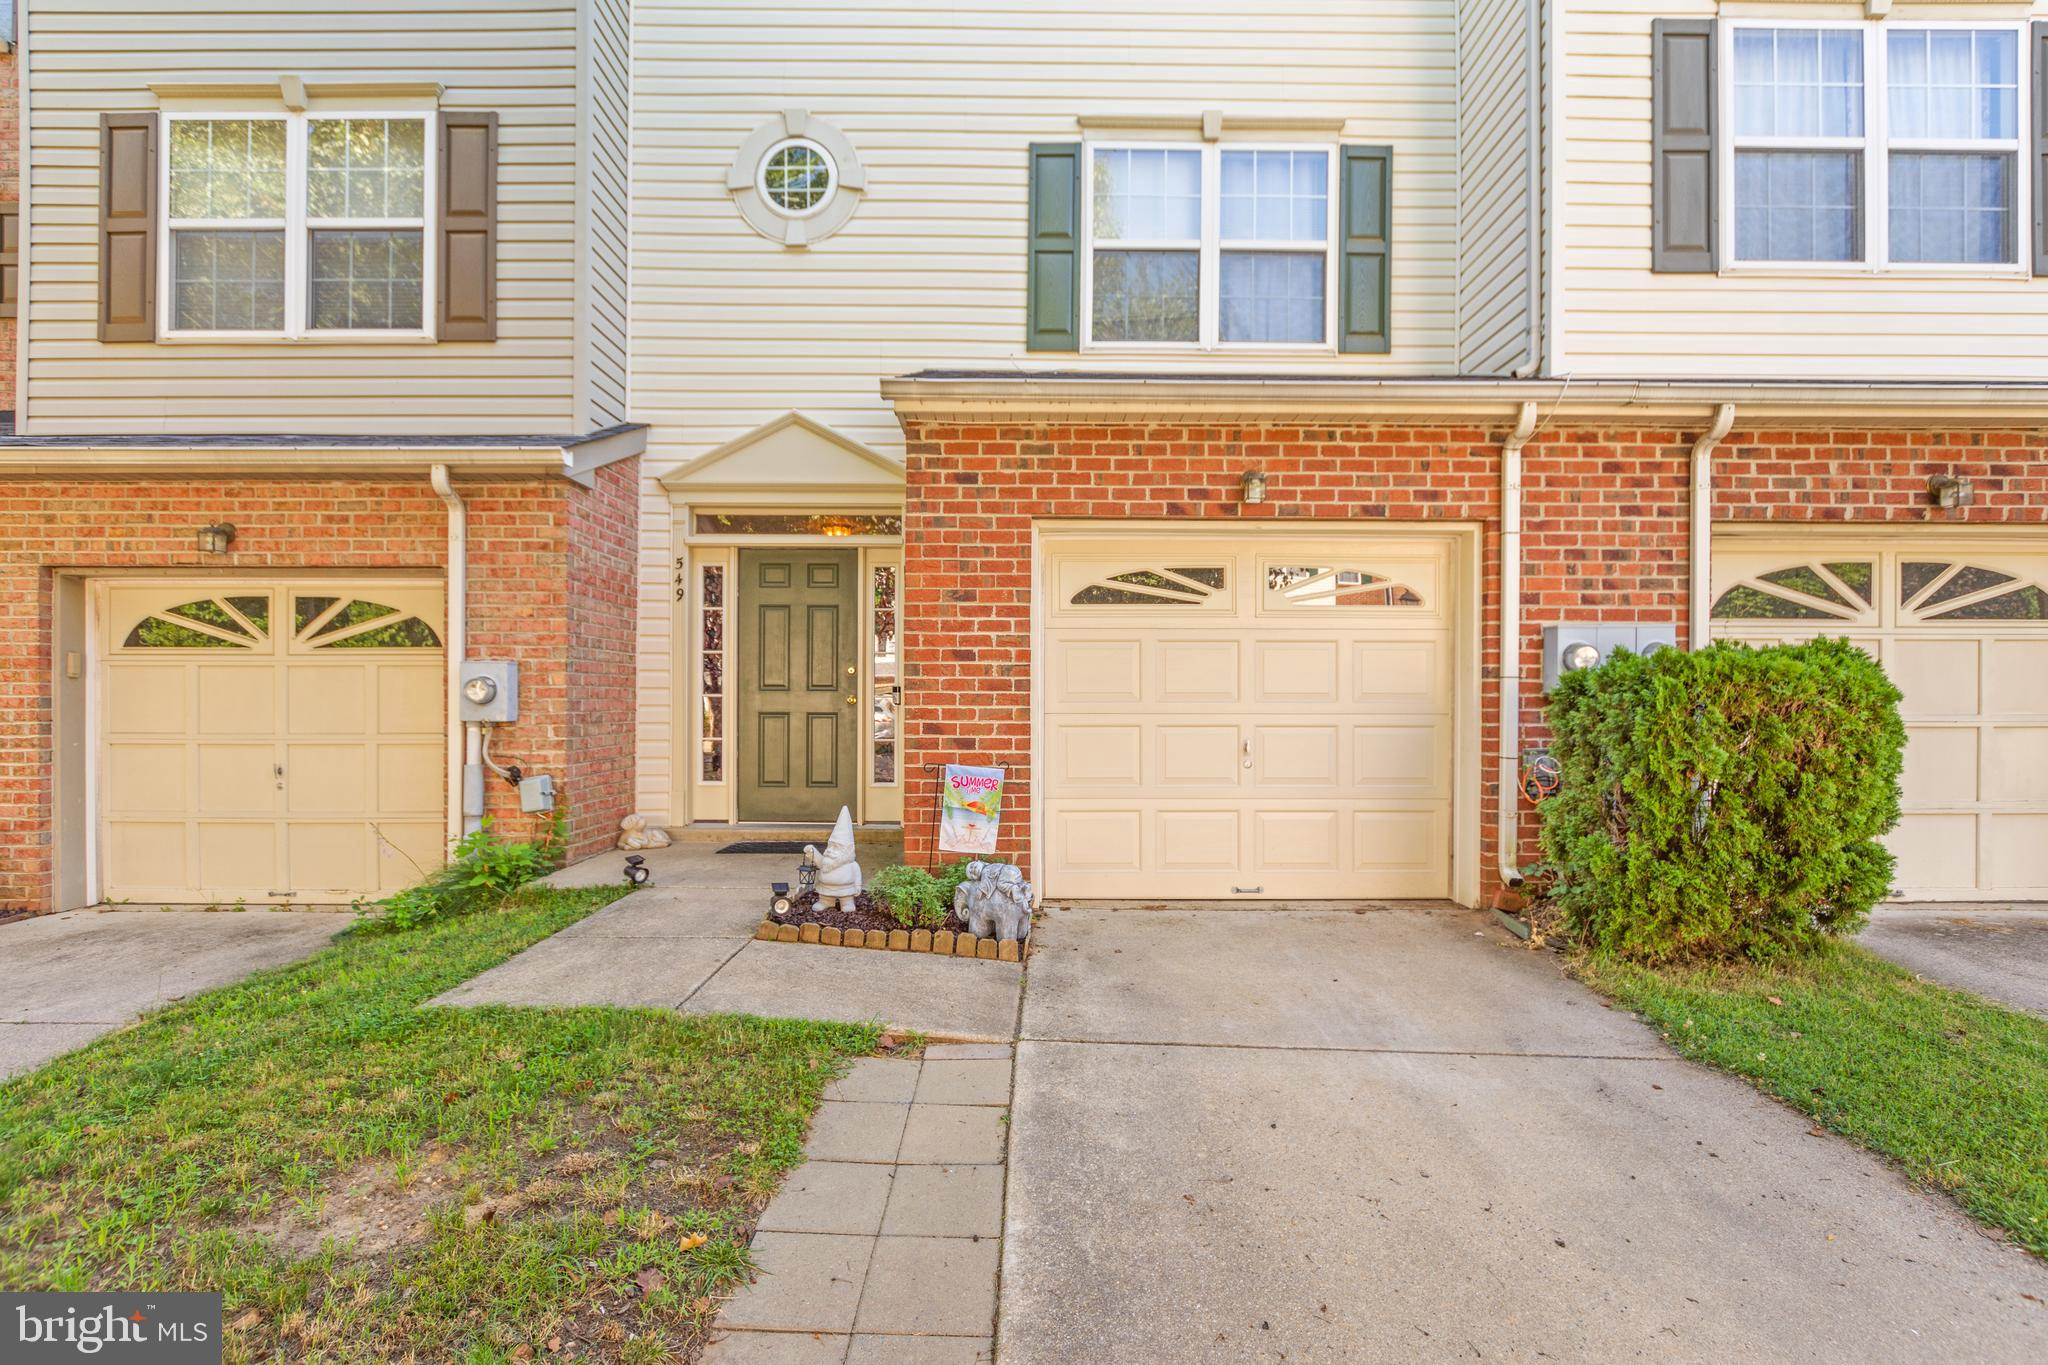 CHARMING AND INVITING BEST DESCRIBES THIS SPACIOUS 3 FINISHED LEVELS, 3 BEDROOM, 2 FULL AND 2 HALF B